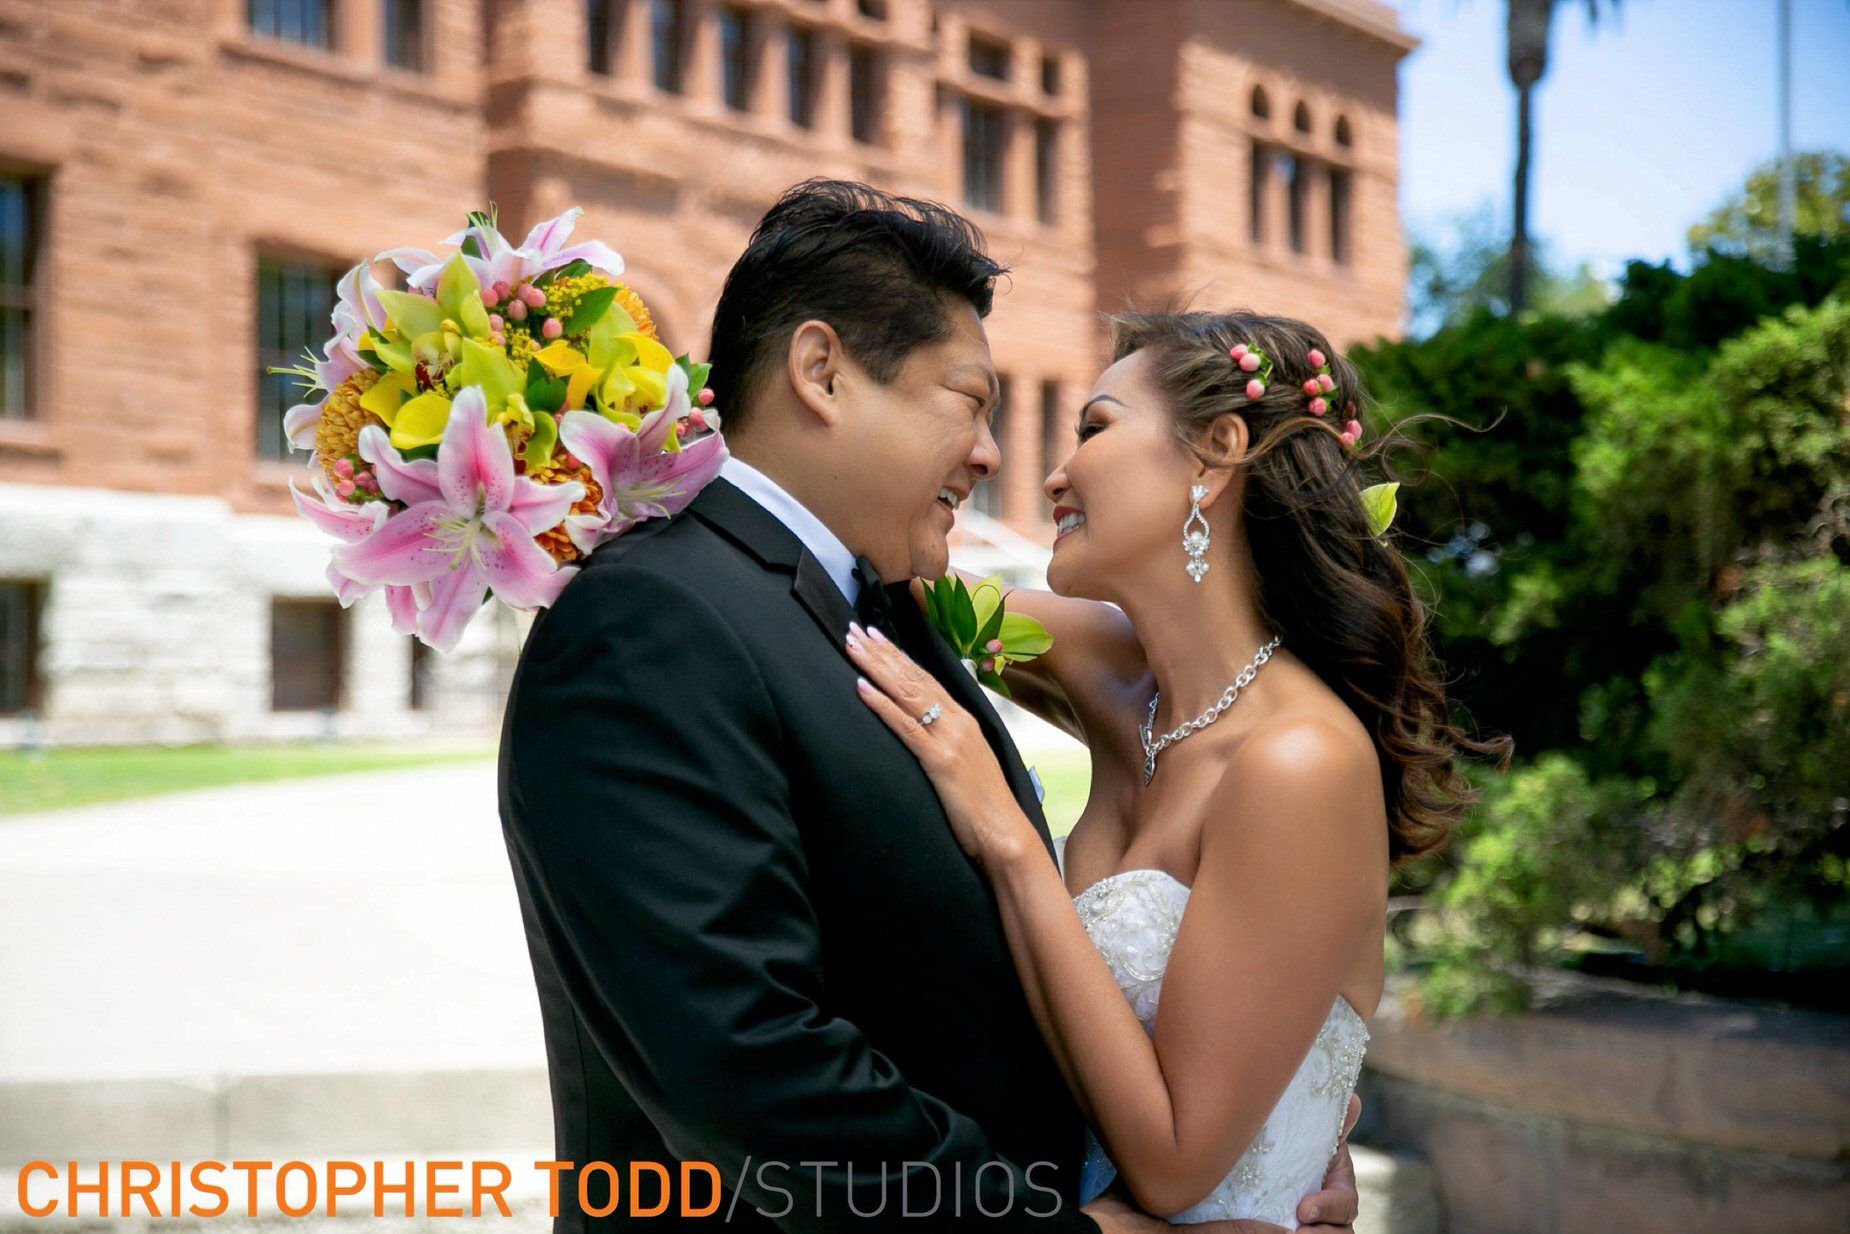 Best Courthouse Wedding in Orange County | Courthouse ...